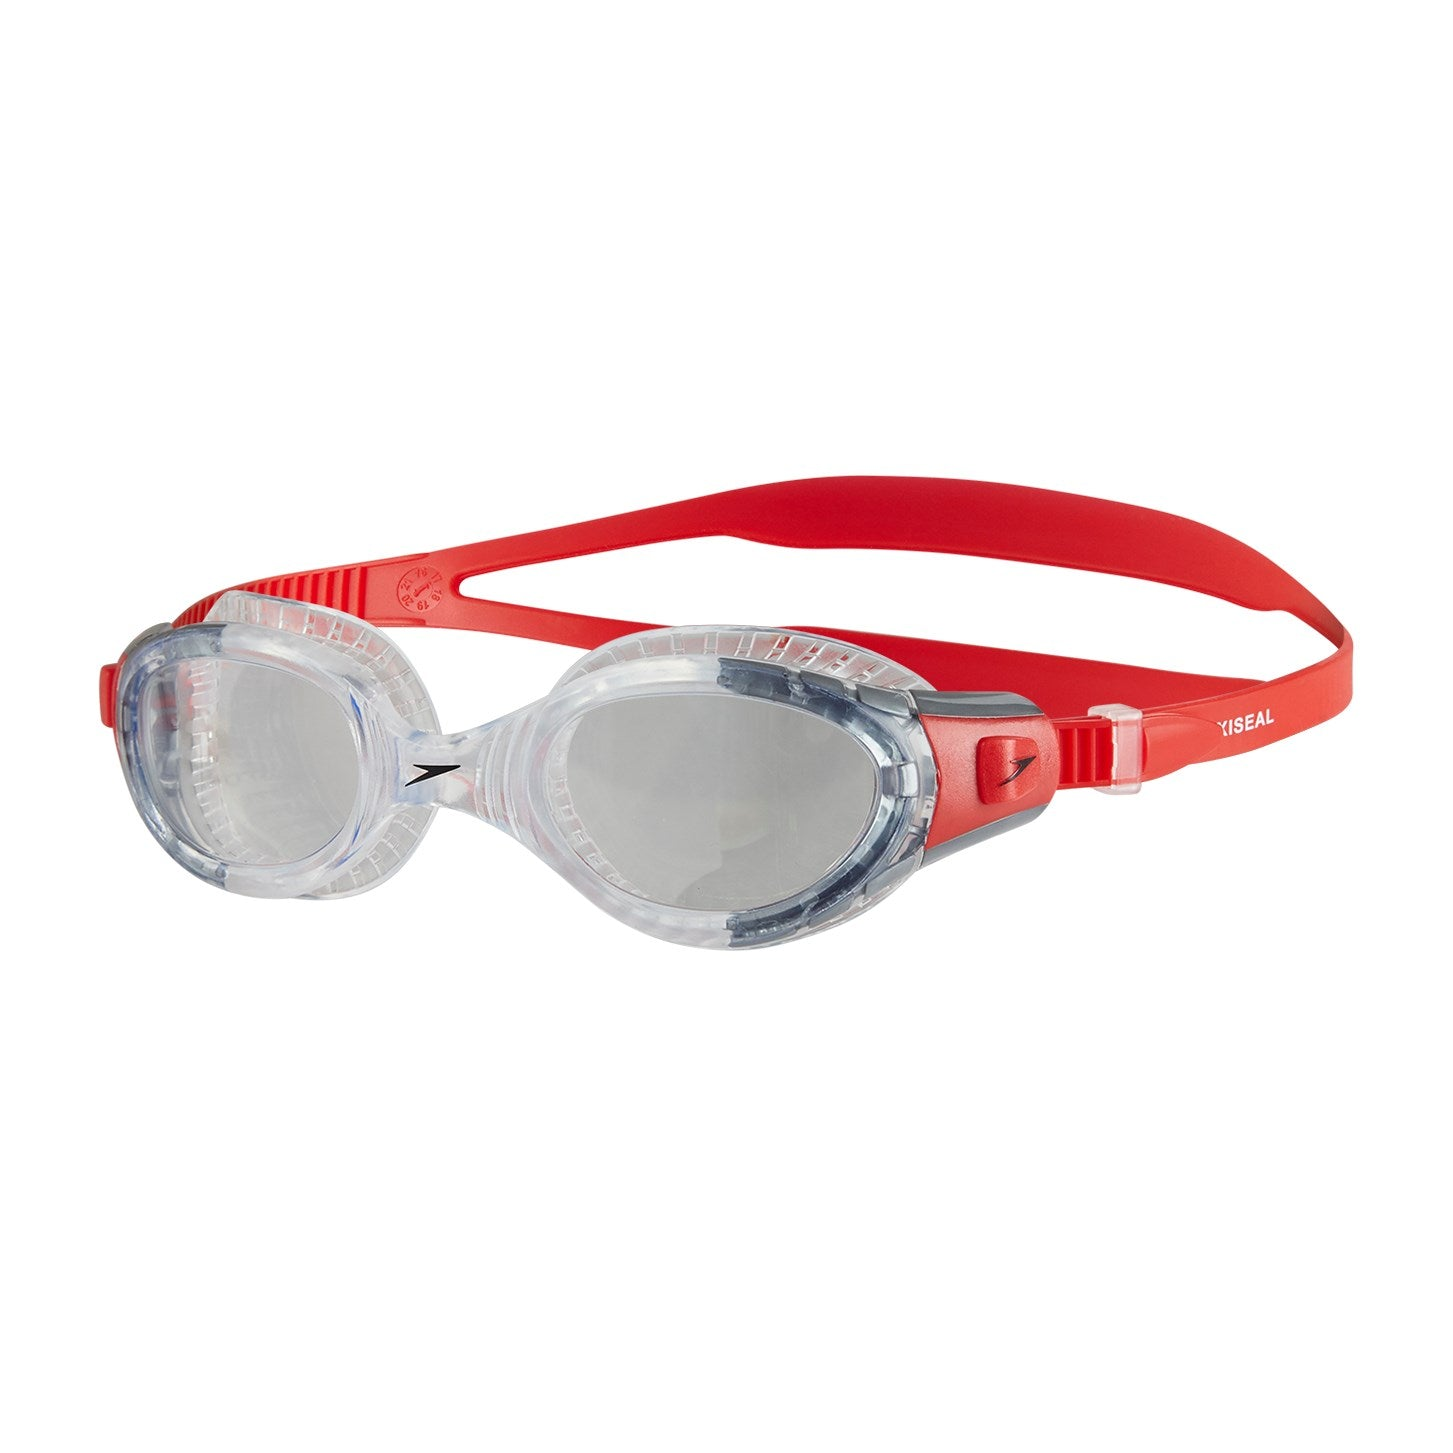 SPEEDO Googles FUTURA BIOFUSE FLEXISEAL 11532